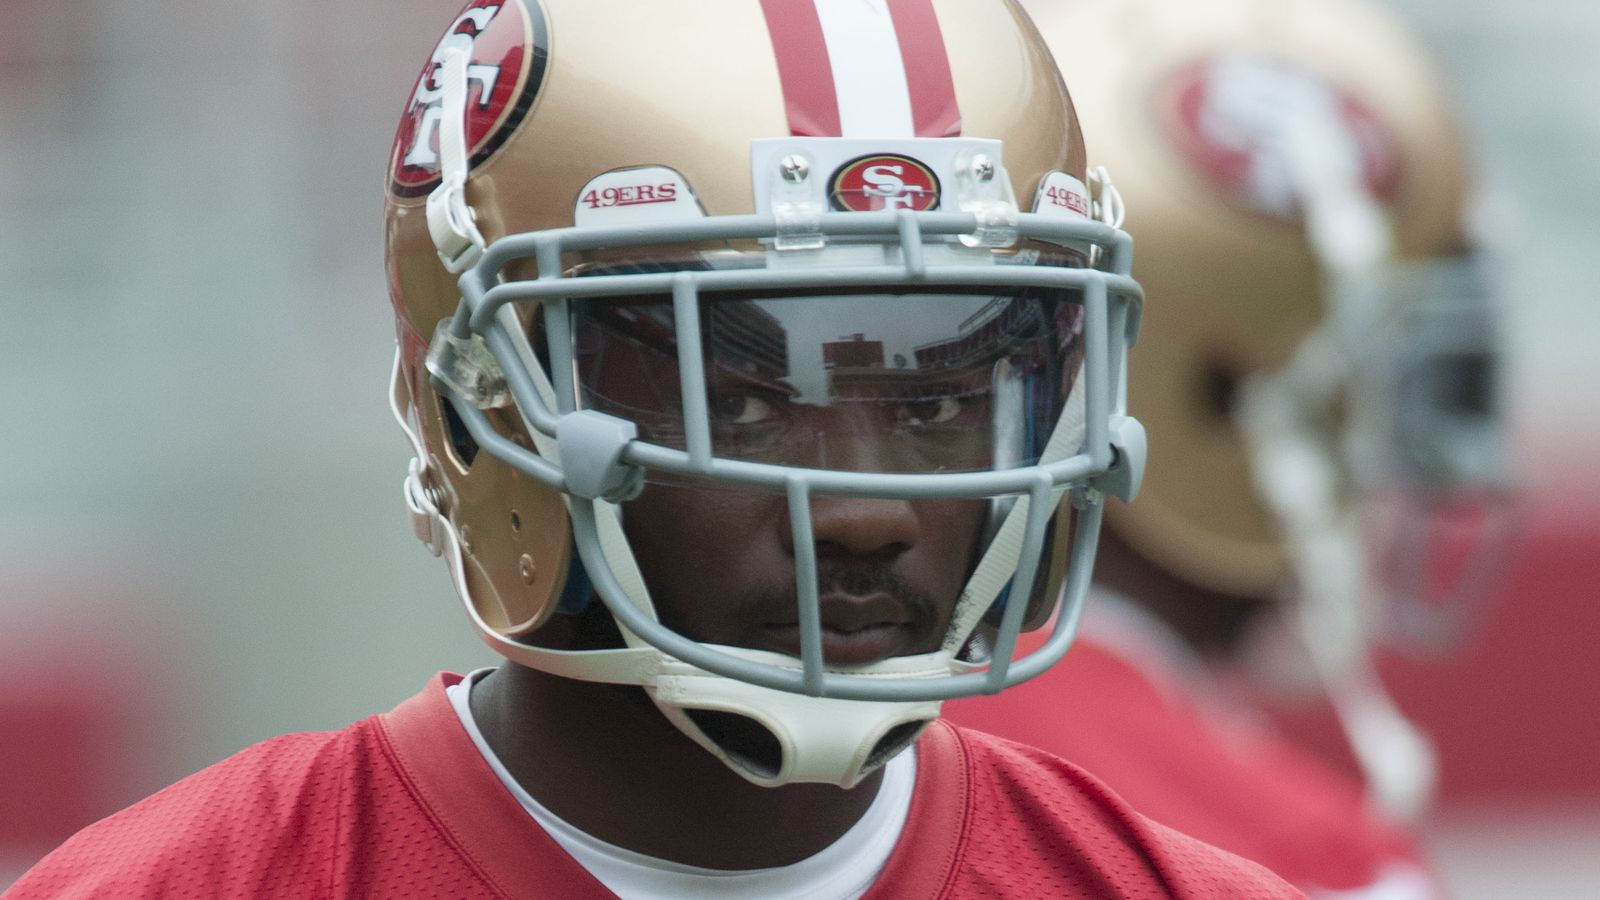 Nike authentic jerseys - Nick Saban on early 49ers standout DeAndrew White - Niners Nation